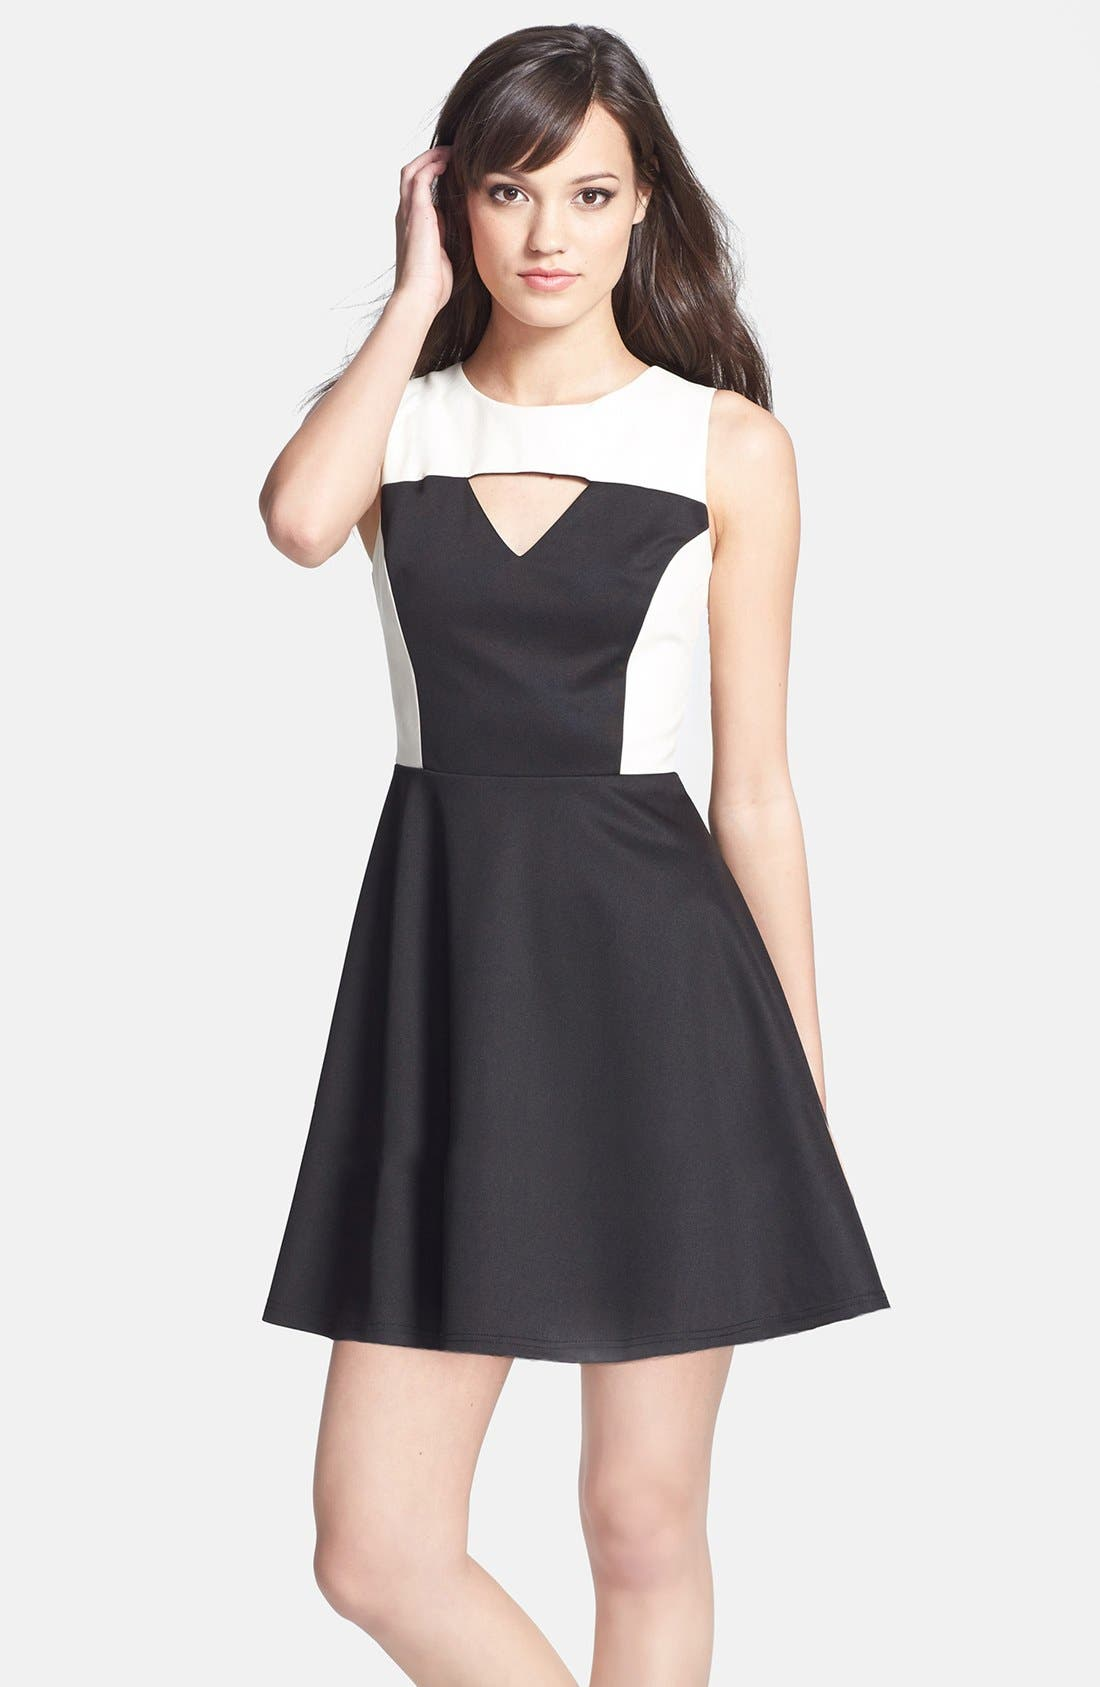 Main Image - MM Couture Cutout Faux Leather Contrast Ponte Knit Fit & Flare Dress